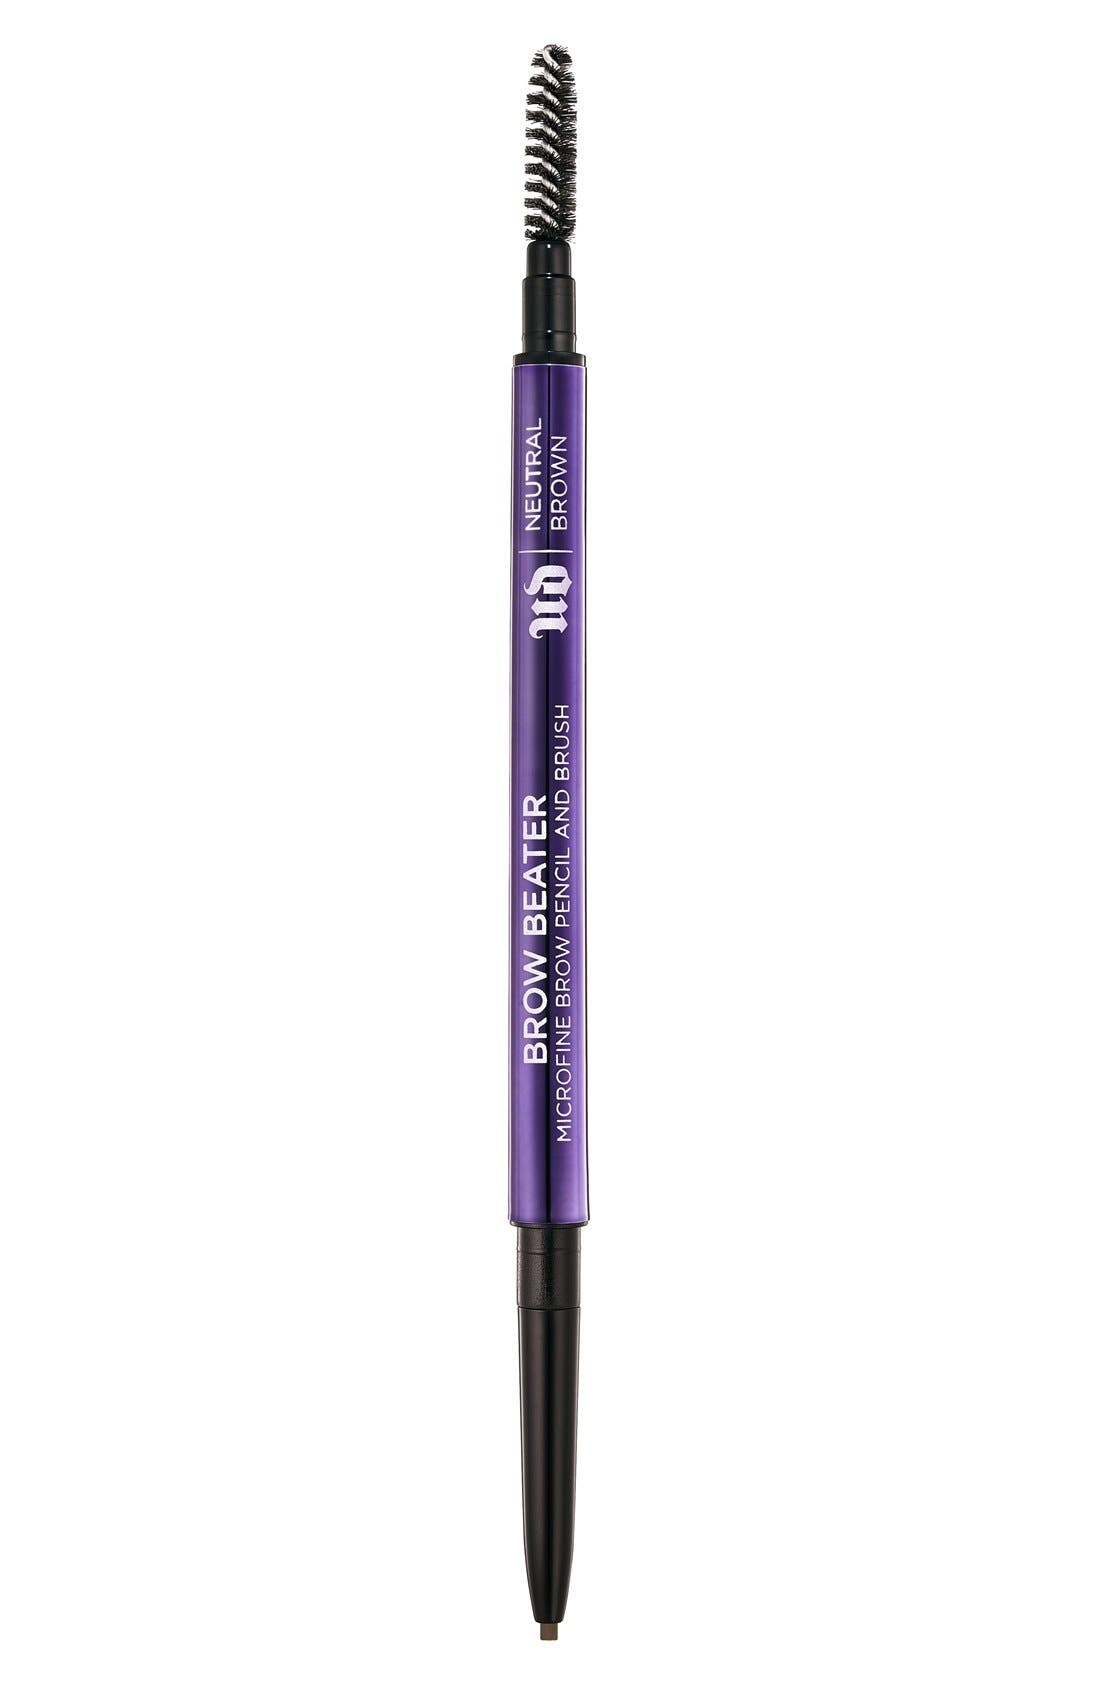 Brow Beater Microfine Brow Pencil & Brush,                         Main,                         color, NEUTRAL BROWN